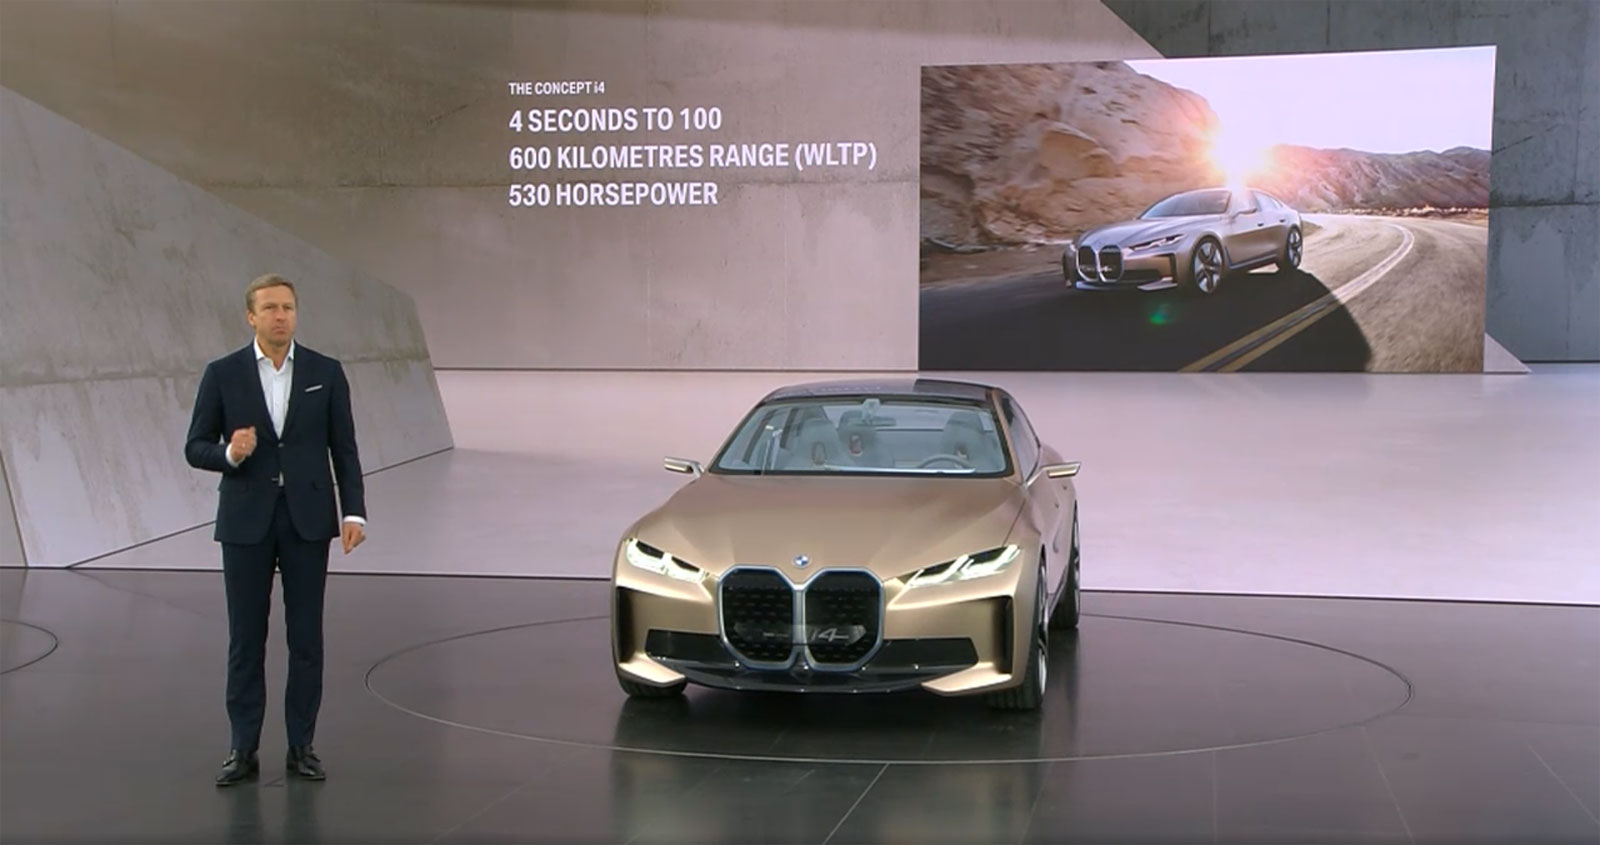 The Bmw Concept I4 Goes Official With A Range Of Up To 600 Km 530 Horsepower